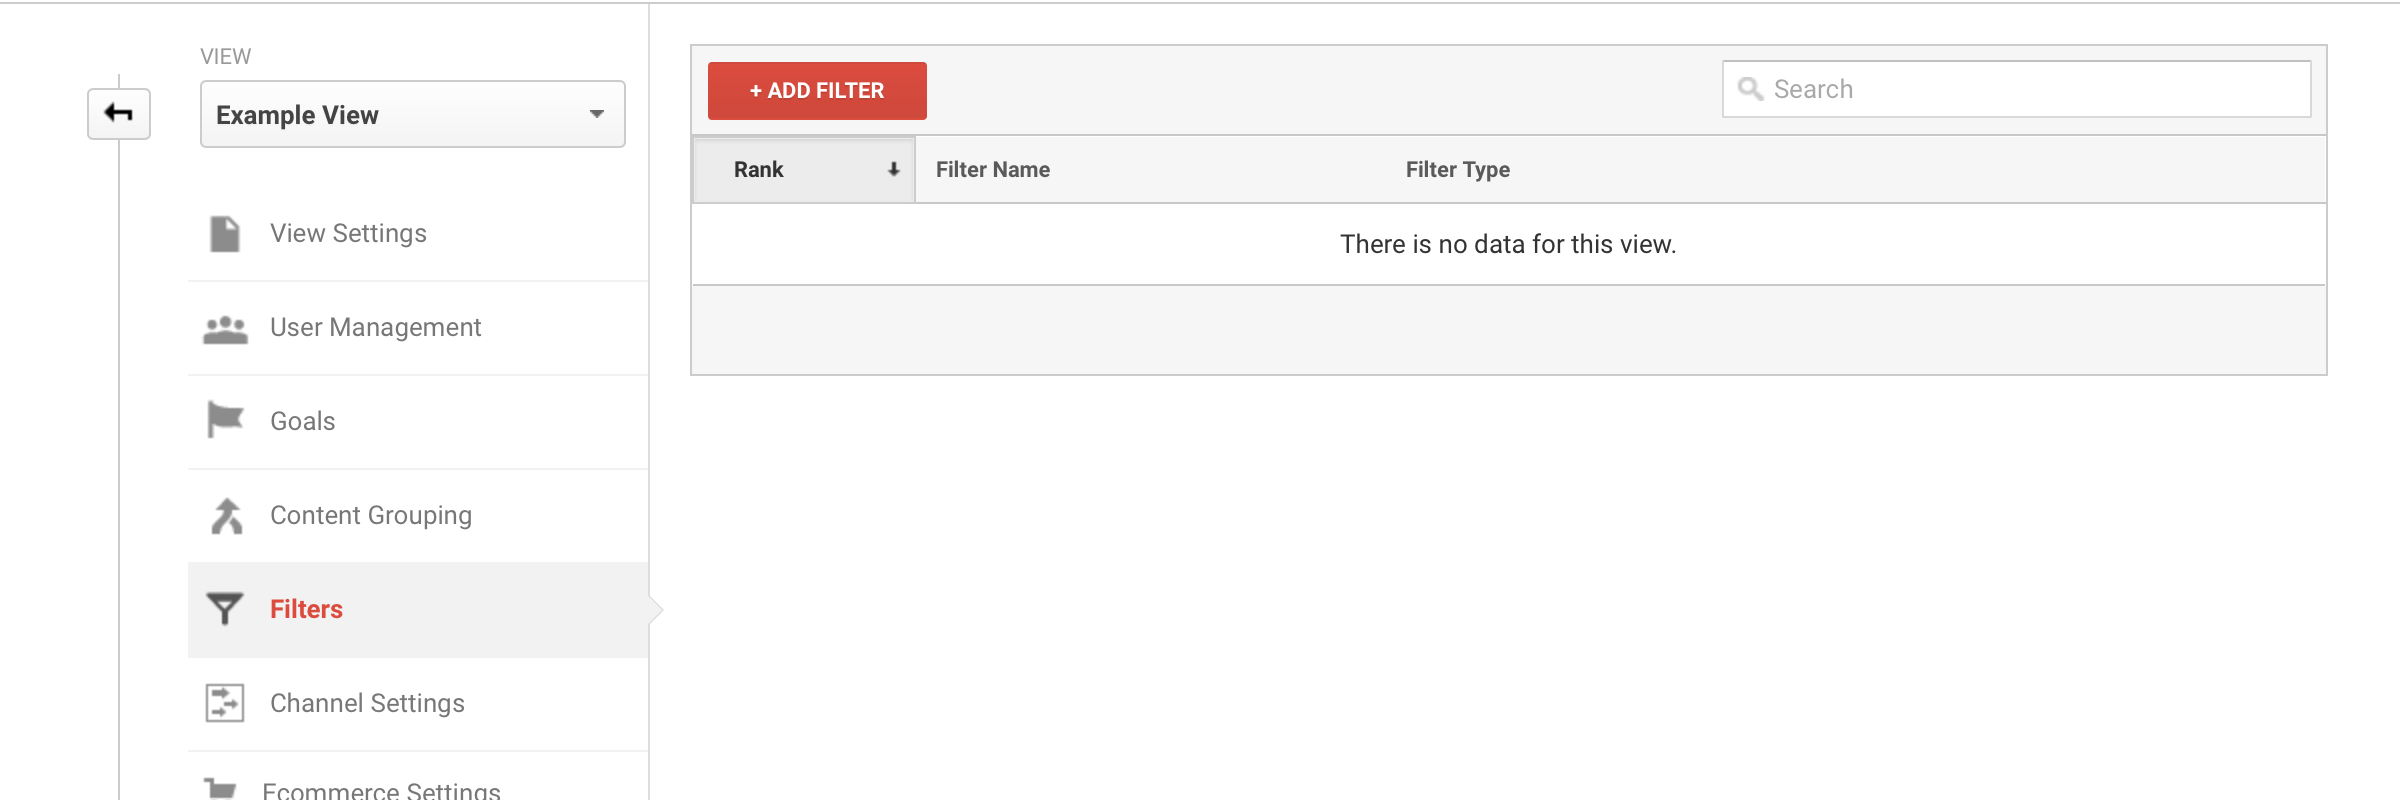 Google Analytics, add Filter